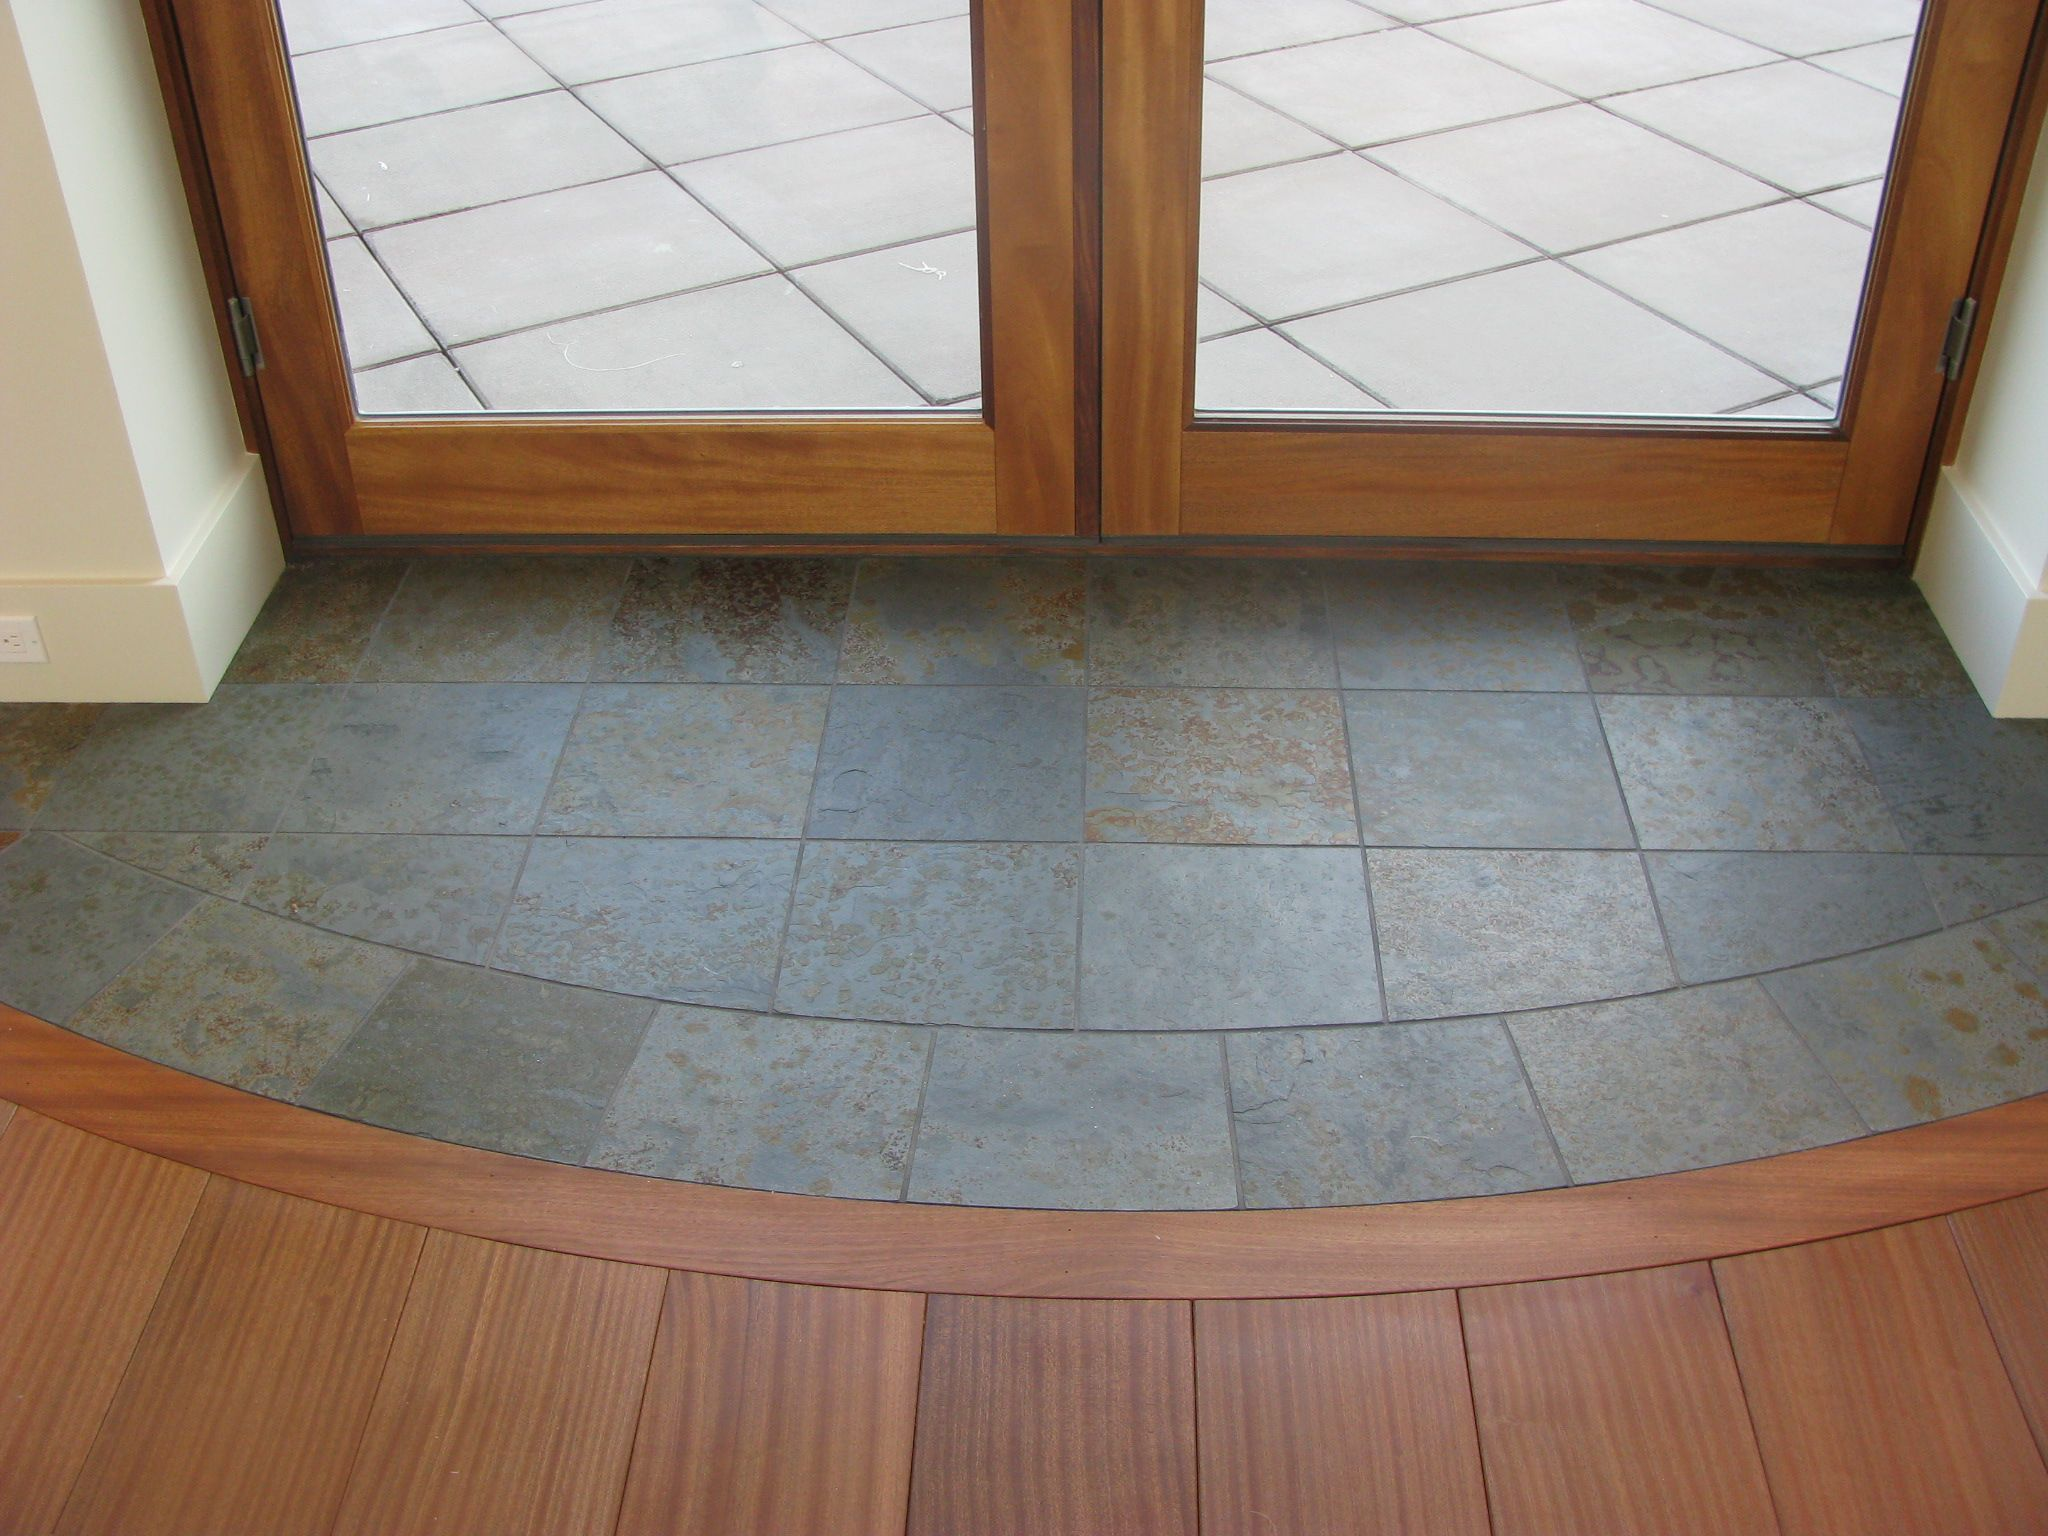 Slate Entryway To Protect Hardwood Floors At French Door For When I - What do you need for tile floor